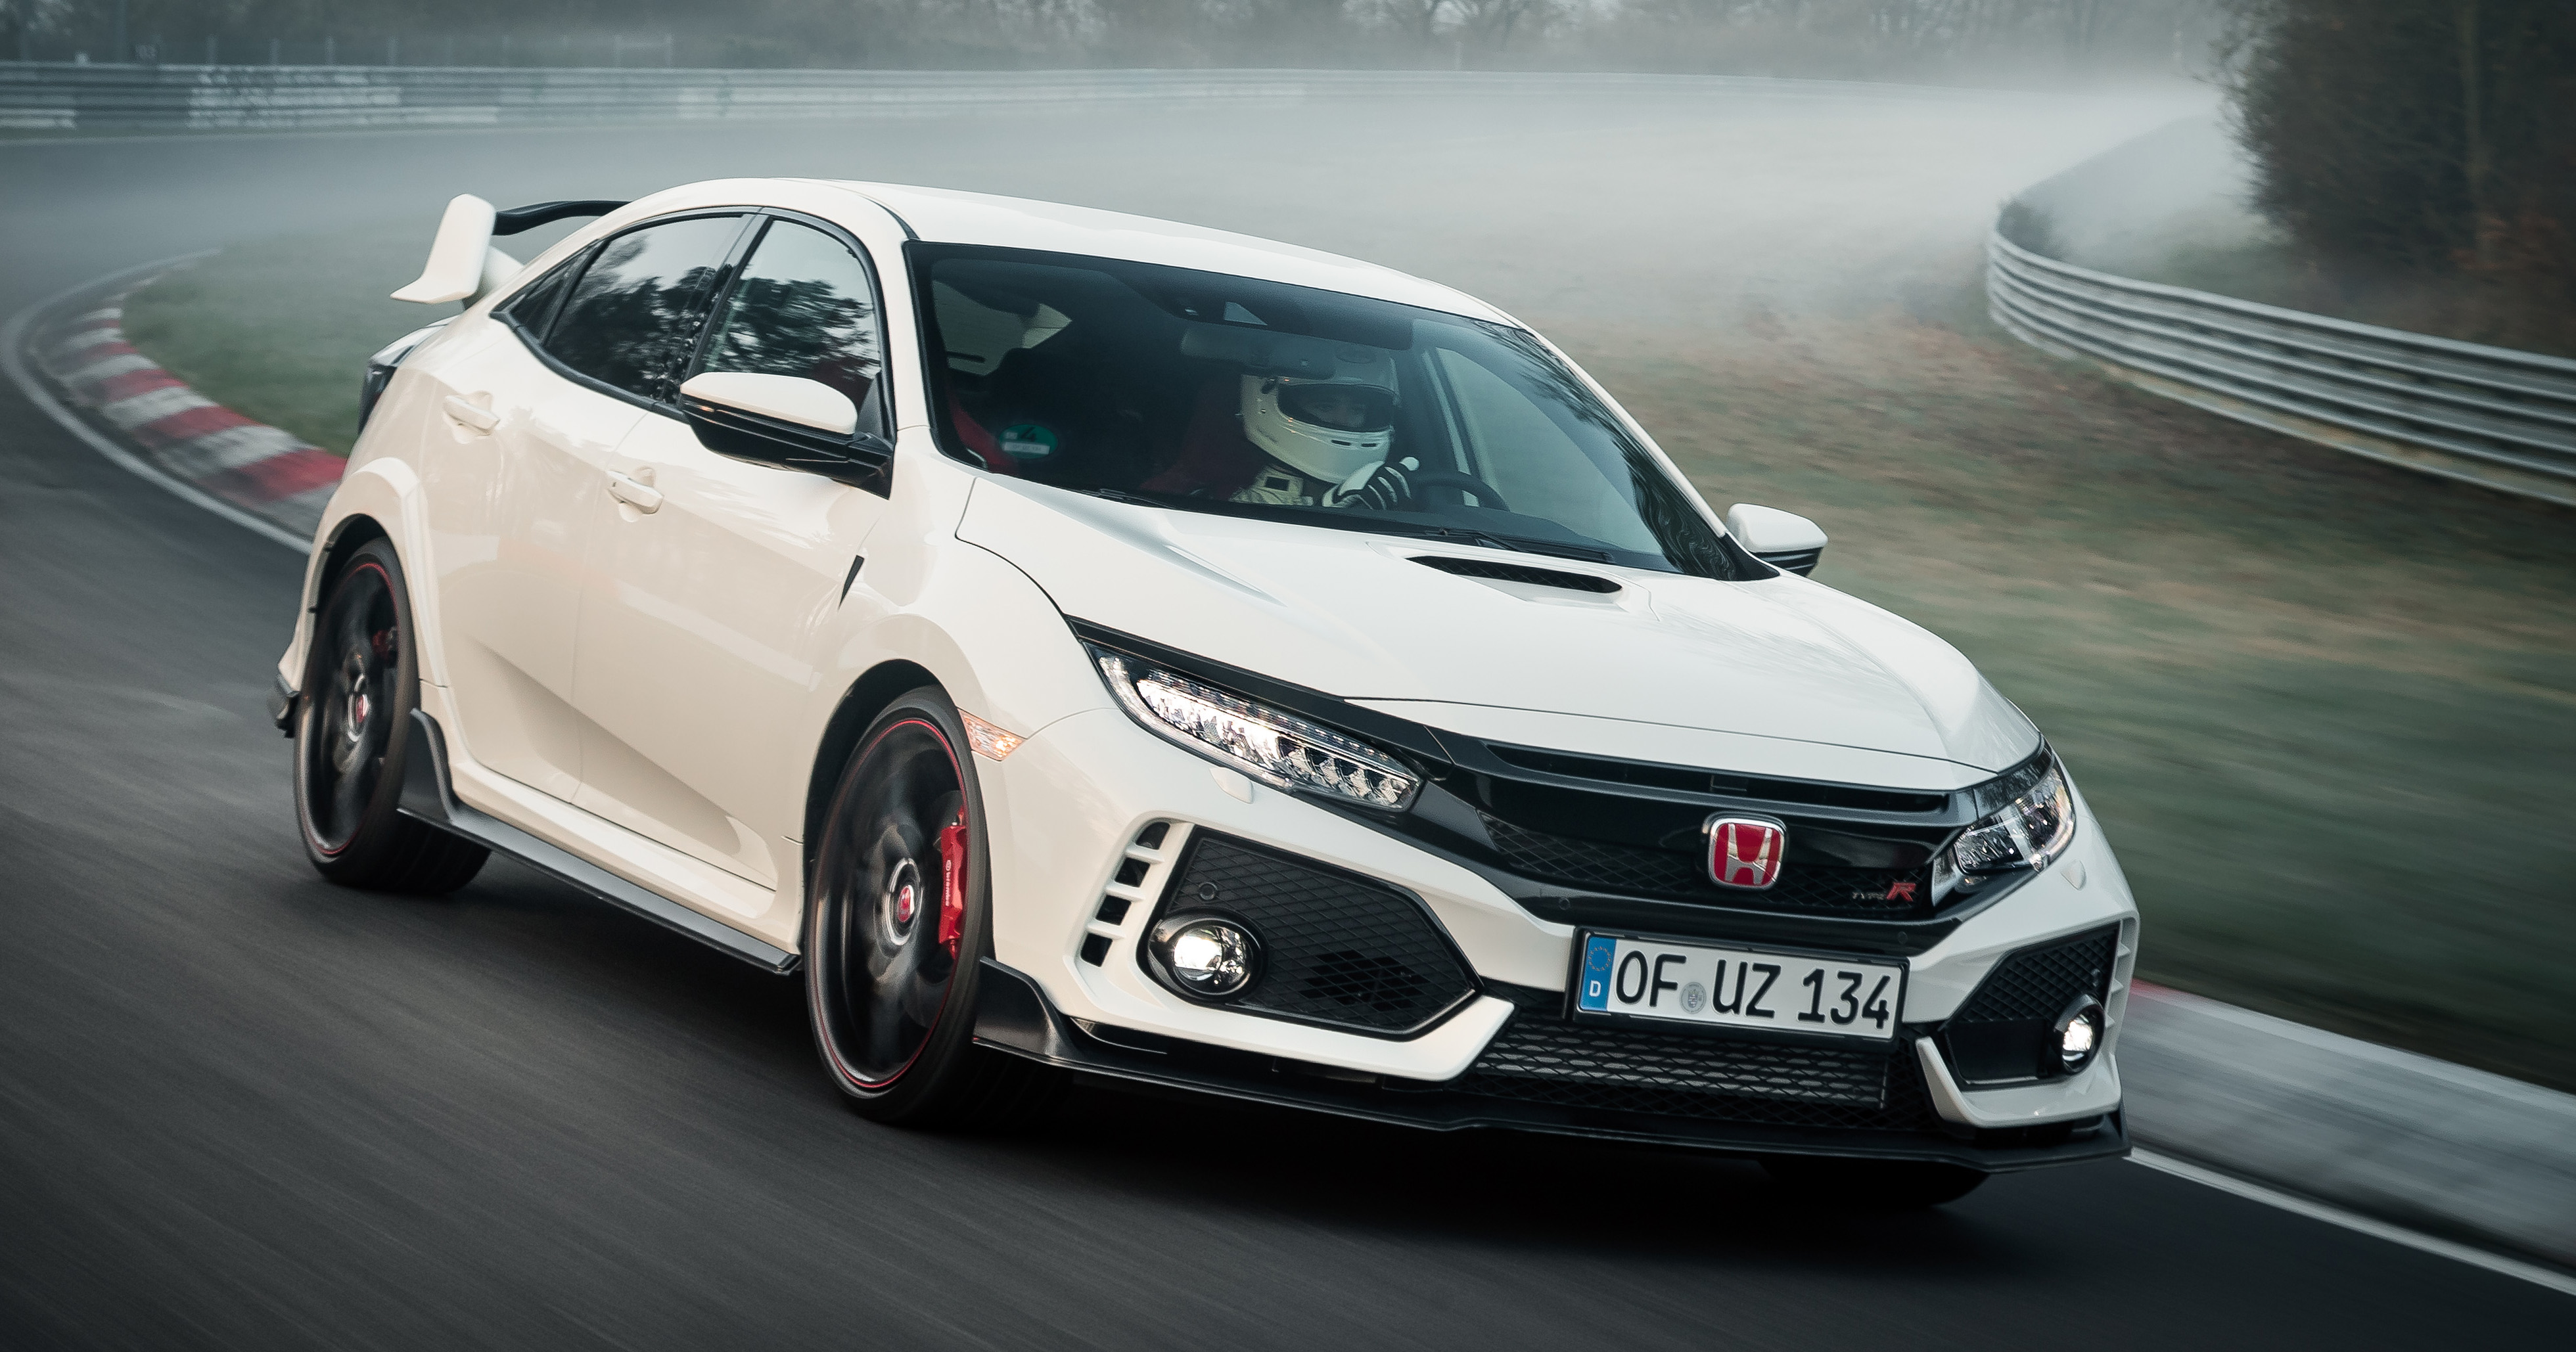 honda civic type s - photo #8